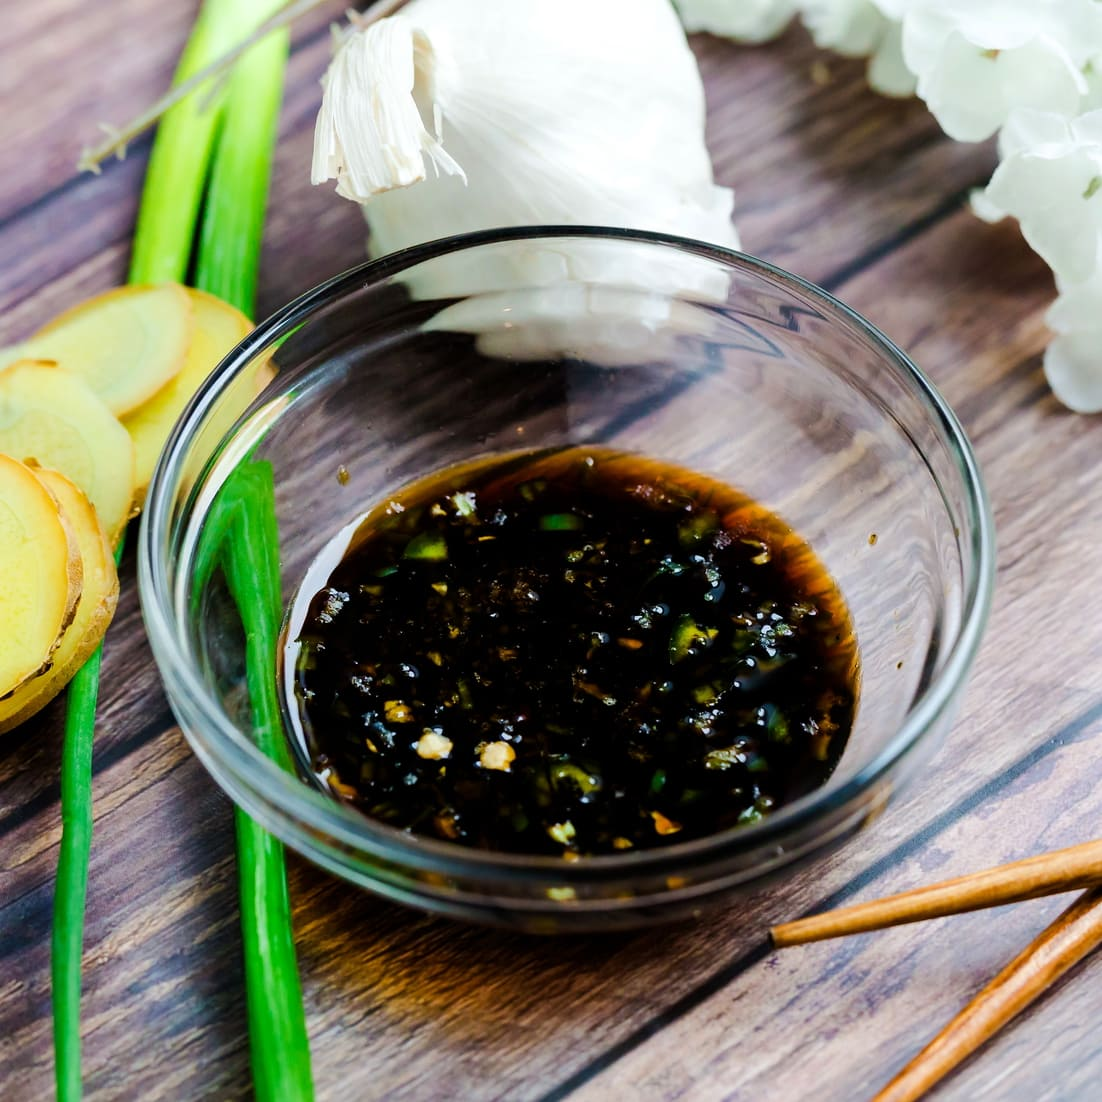 Soy Garlic dipping sauce for boiled pork belly